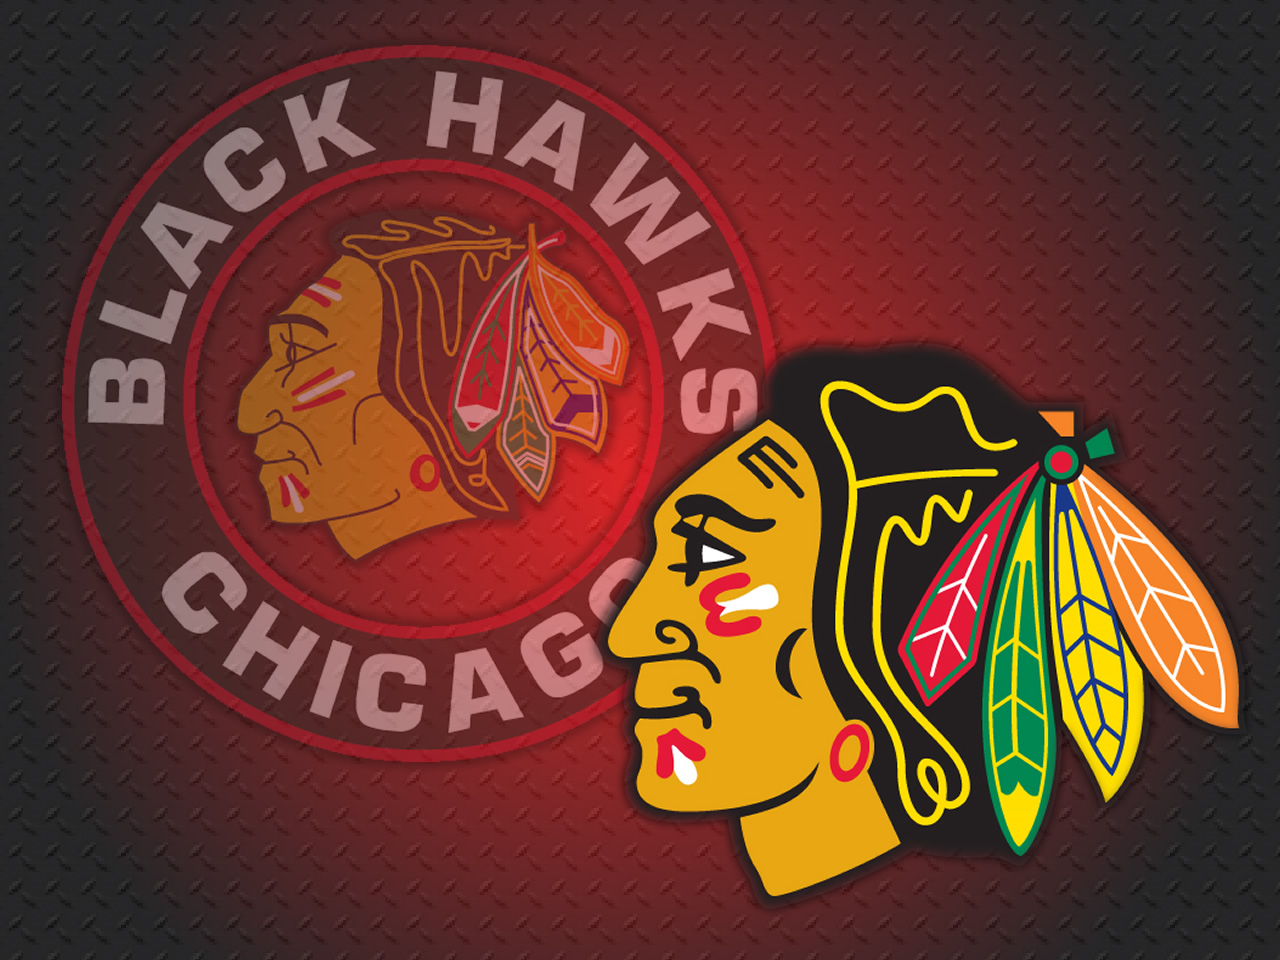 Blackhawks wallpaper droidforums android forums news img voltagebd Image collections